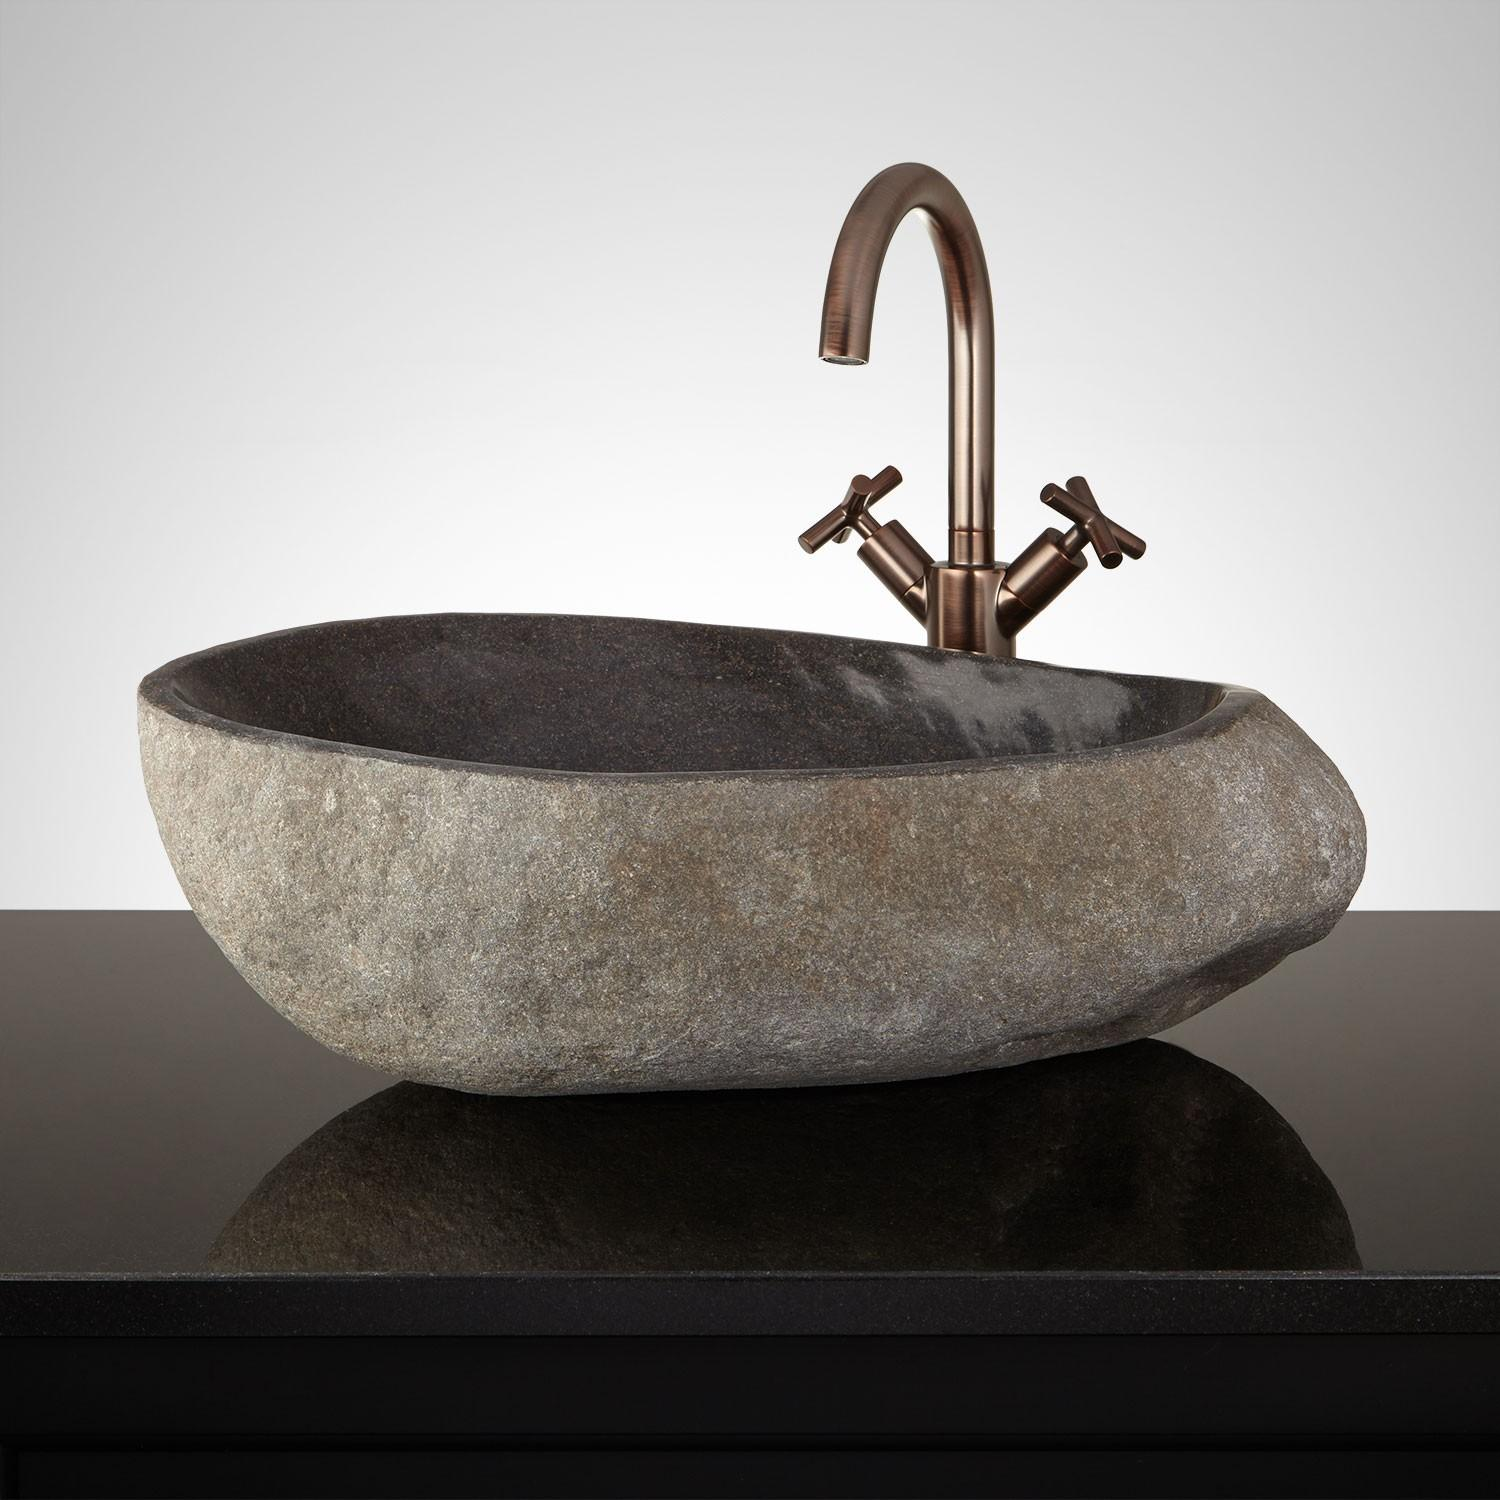 Stylish Diverse Vessel Bathroom Sinks